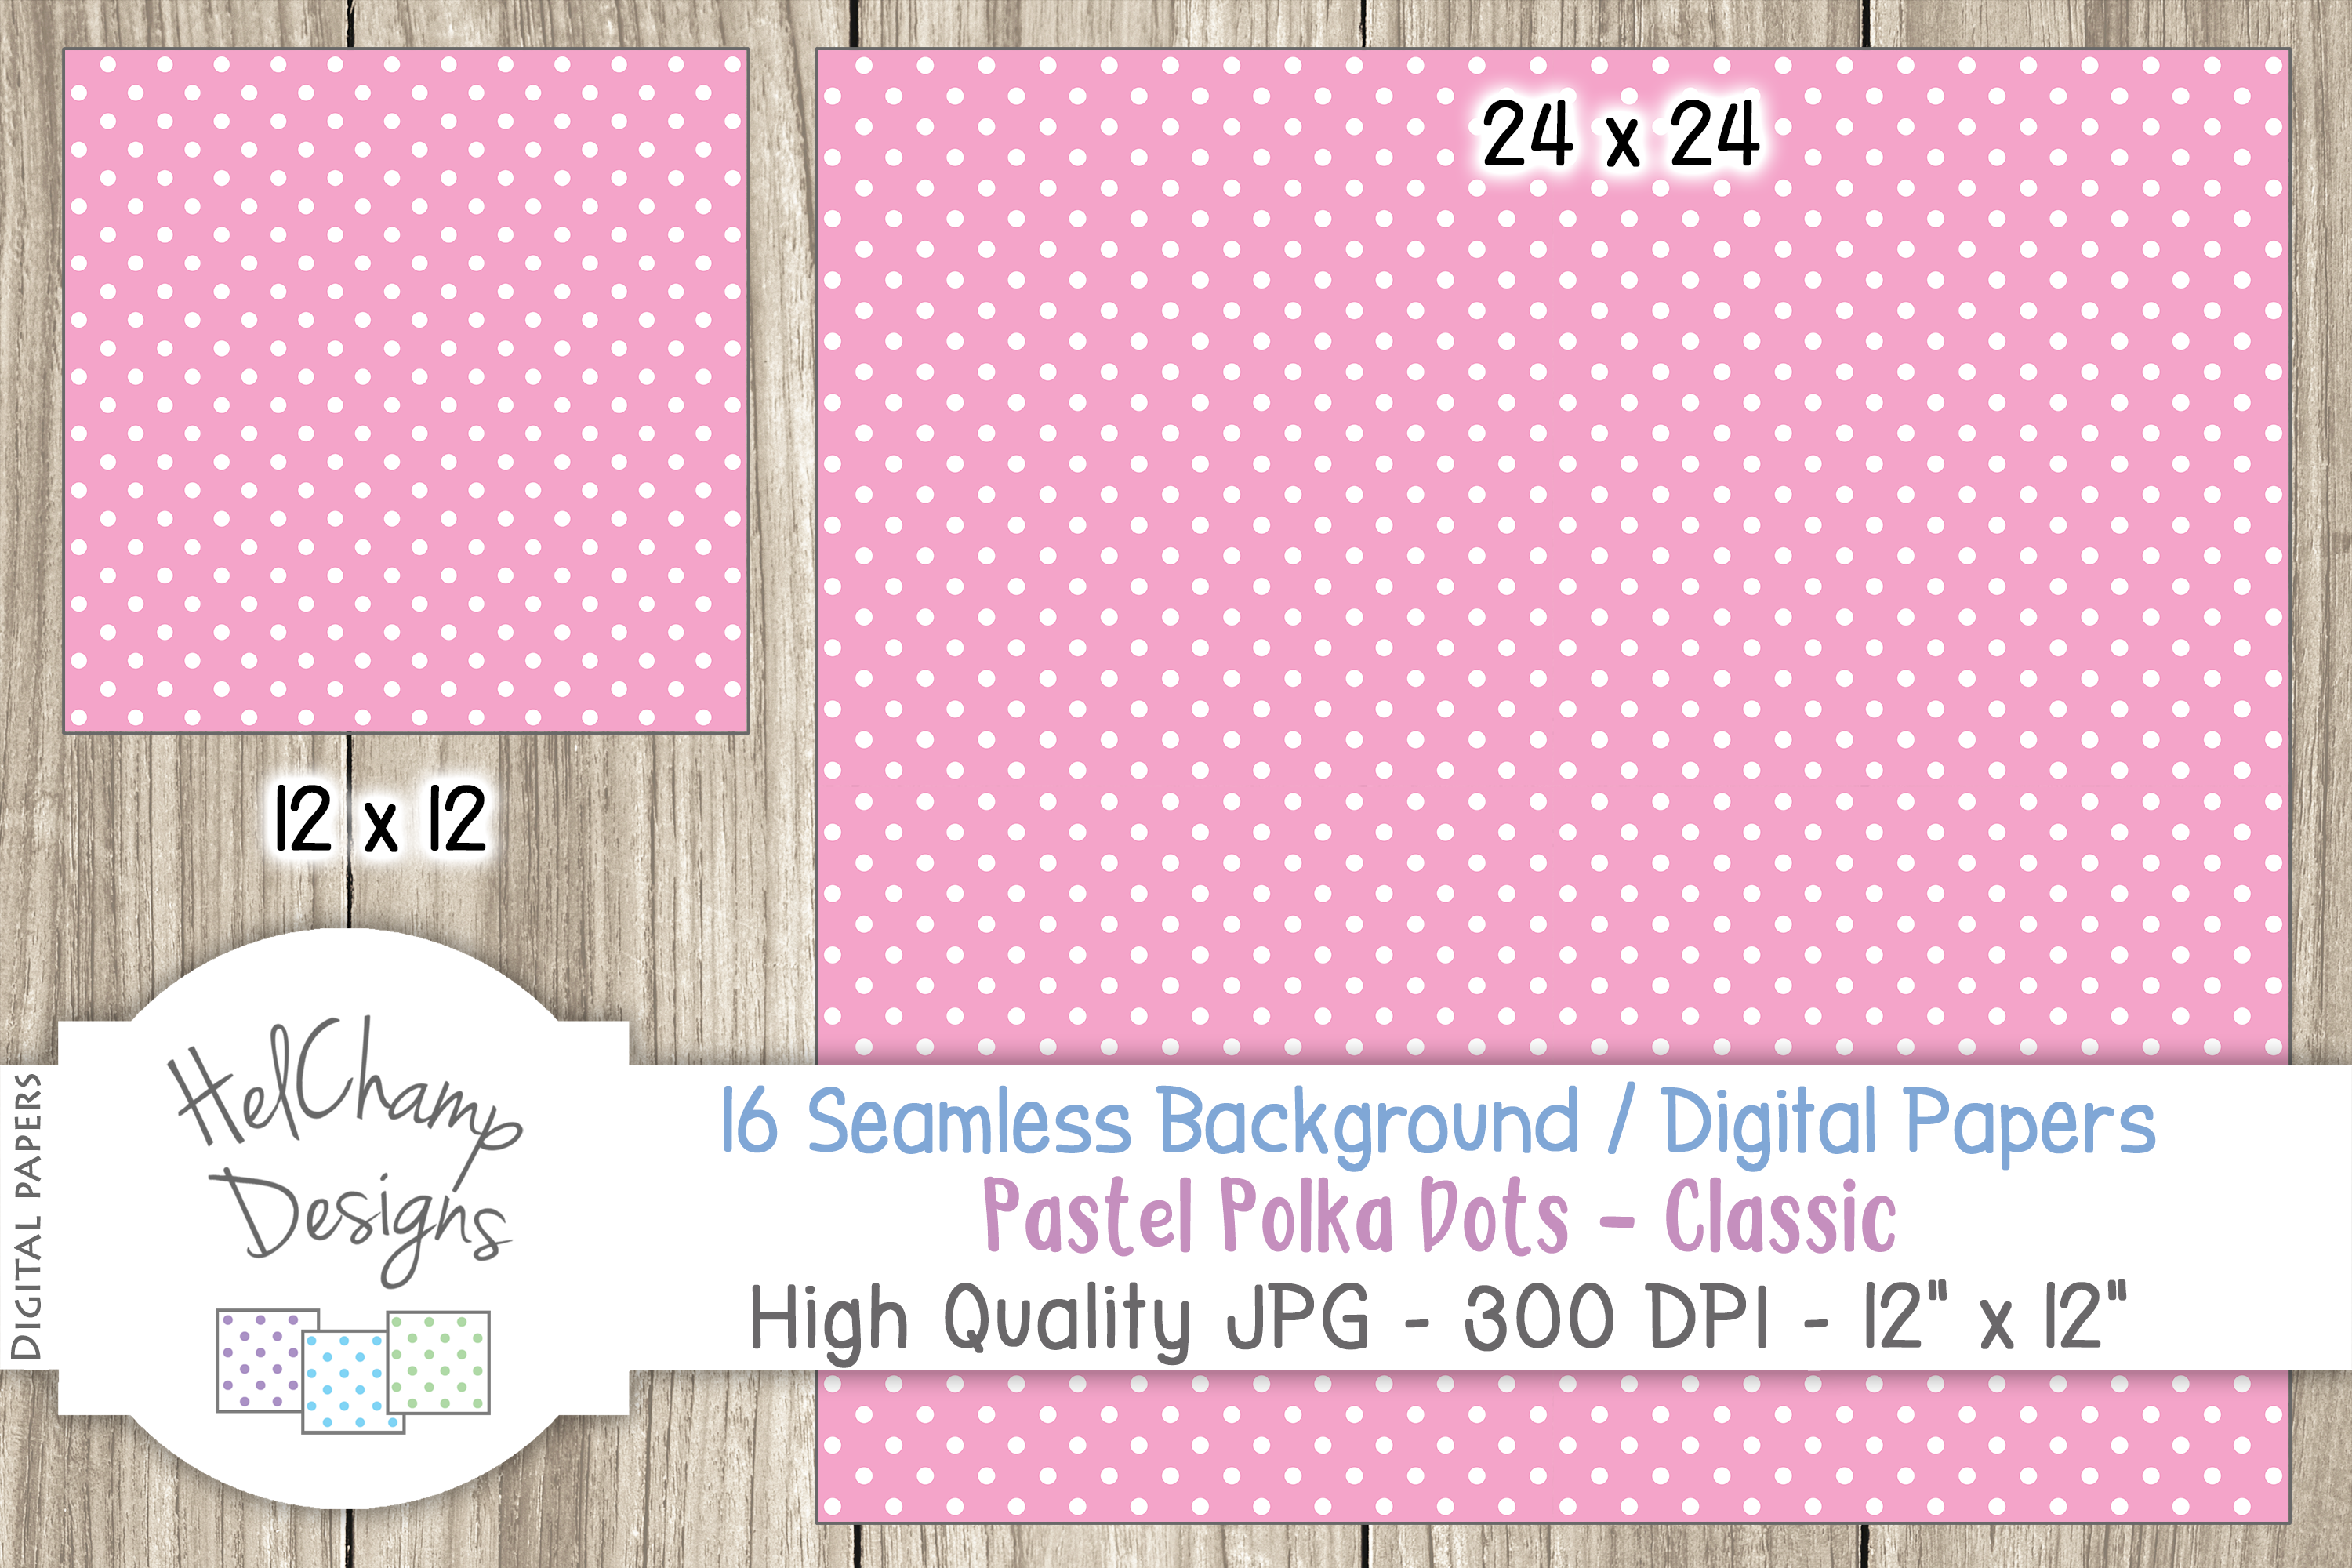 16 seamless Digital Papers Pastel Polka Dots Classic - HC010 example image 6